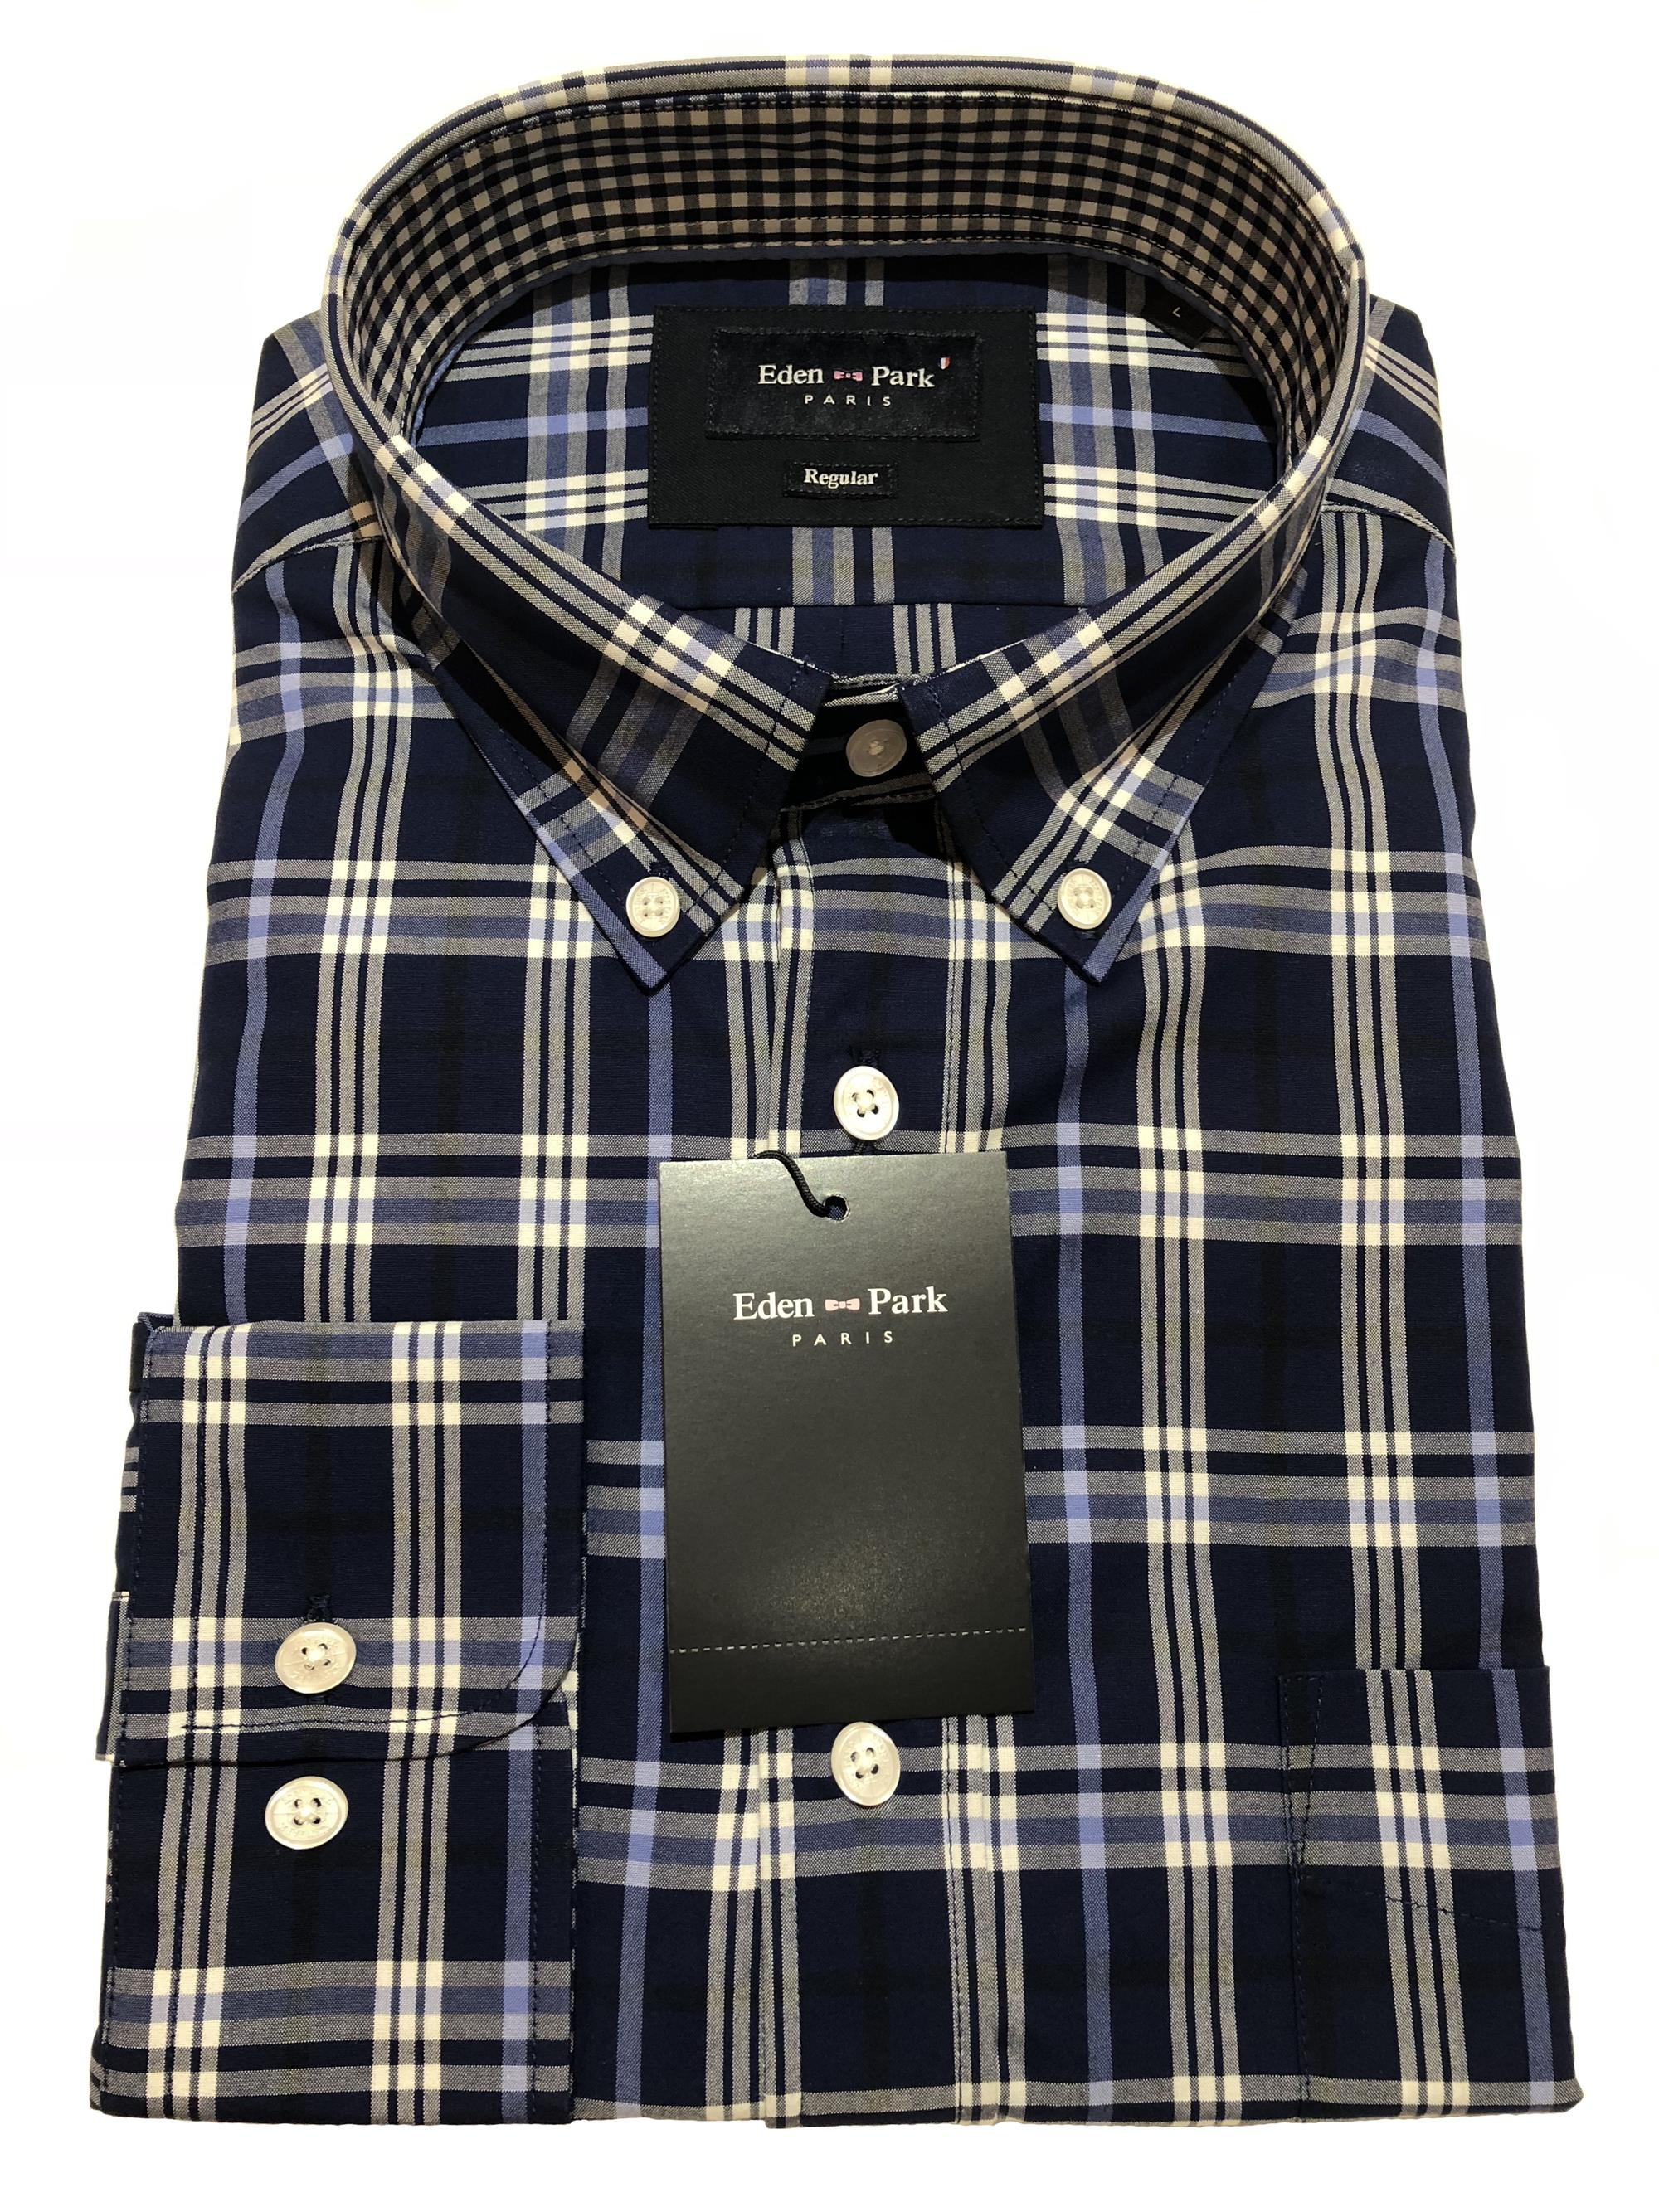 eden park long sleeve check shirt (navy/sky/white)